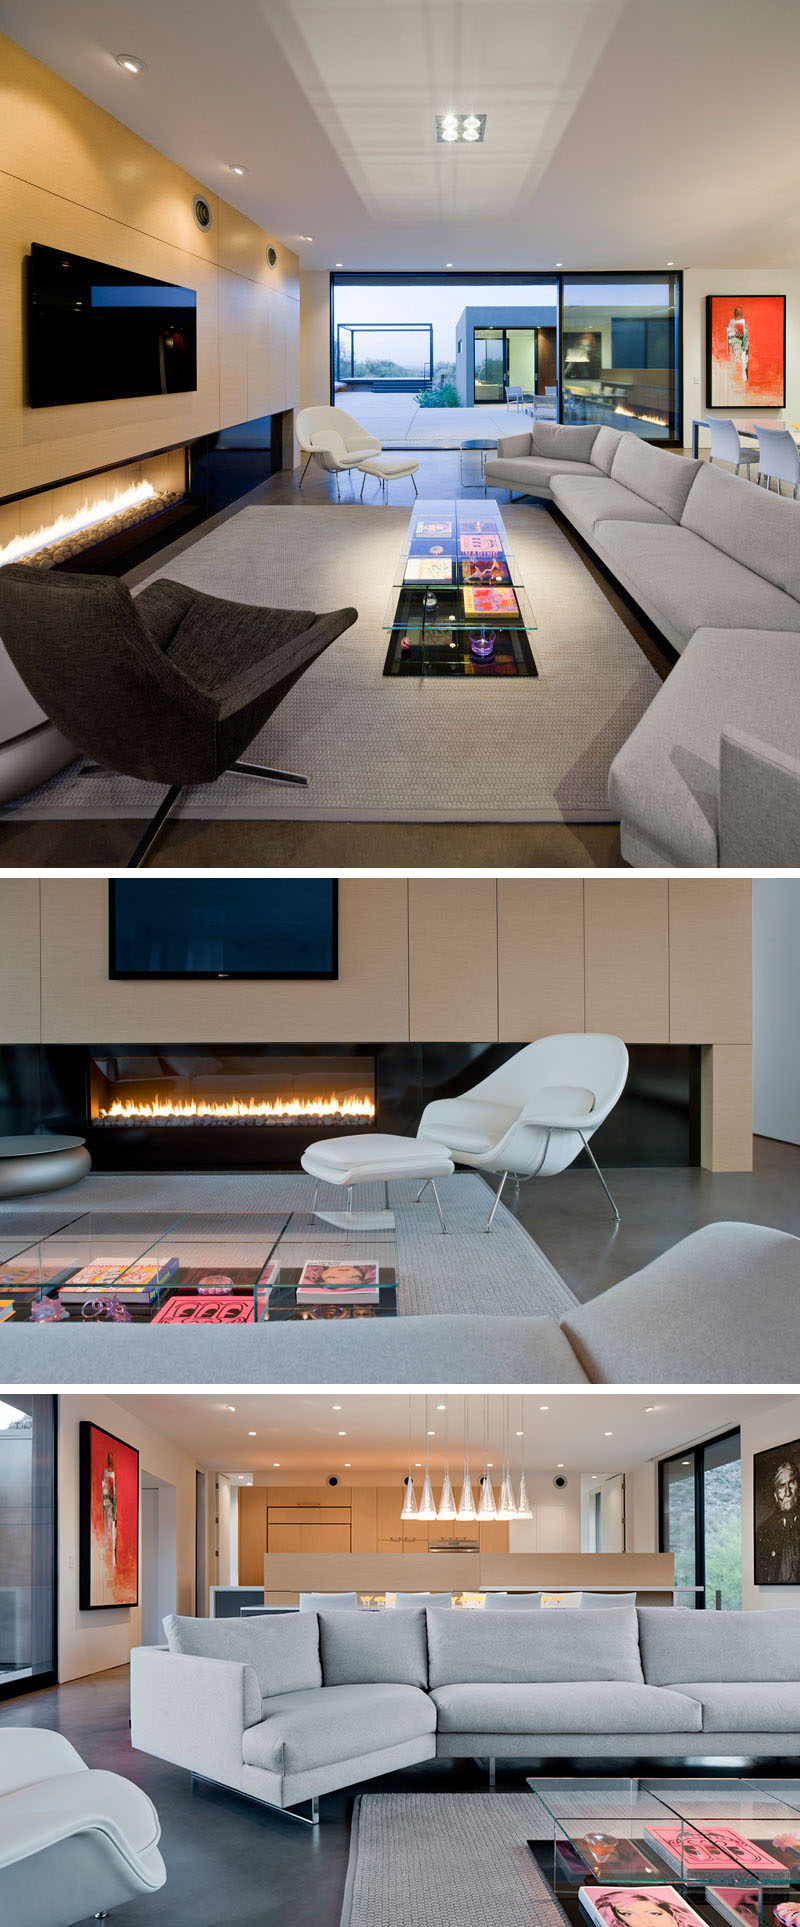 This contemporary living room is focused on wall with a long horizontal fireplace and television.